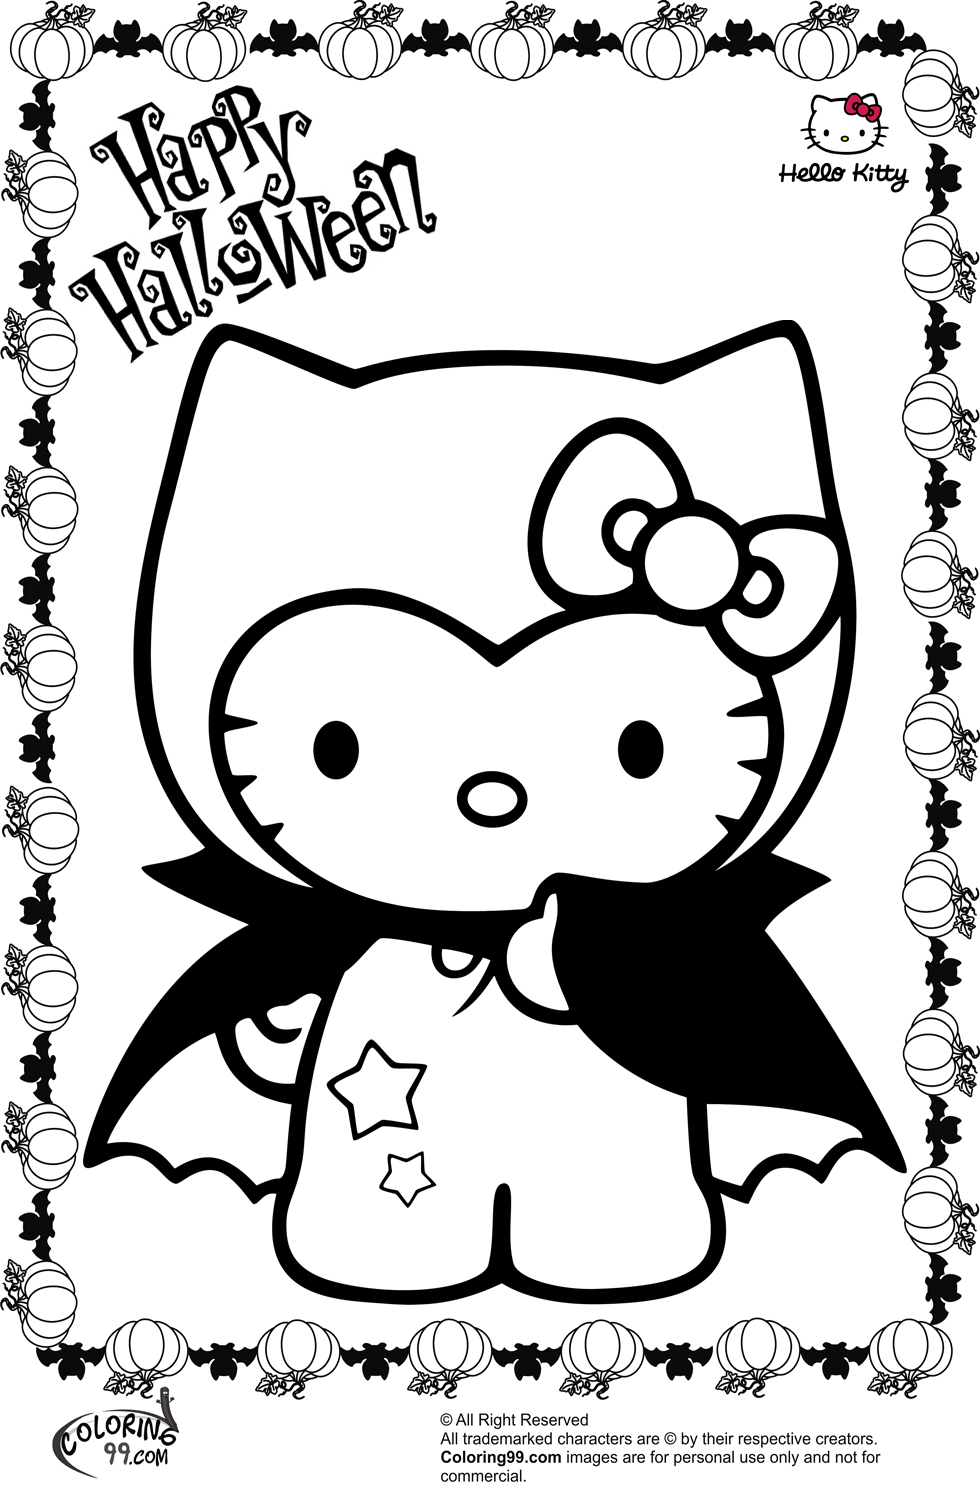 coloring pictures for halloween hello kitty halloween coloring pages minister coloring pictures coloring for halloween